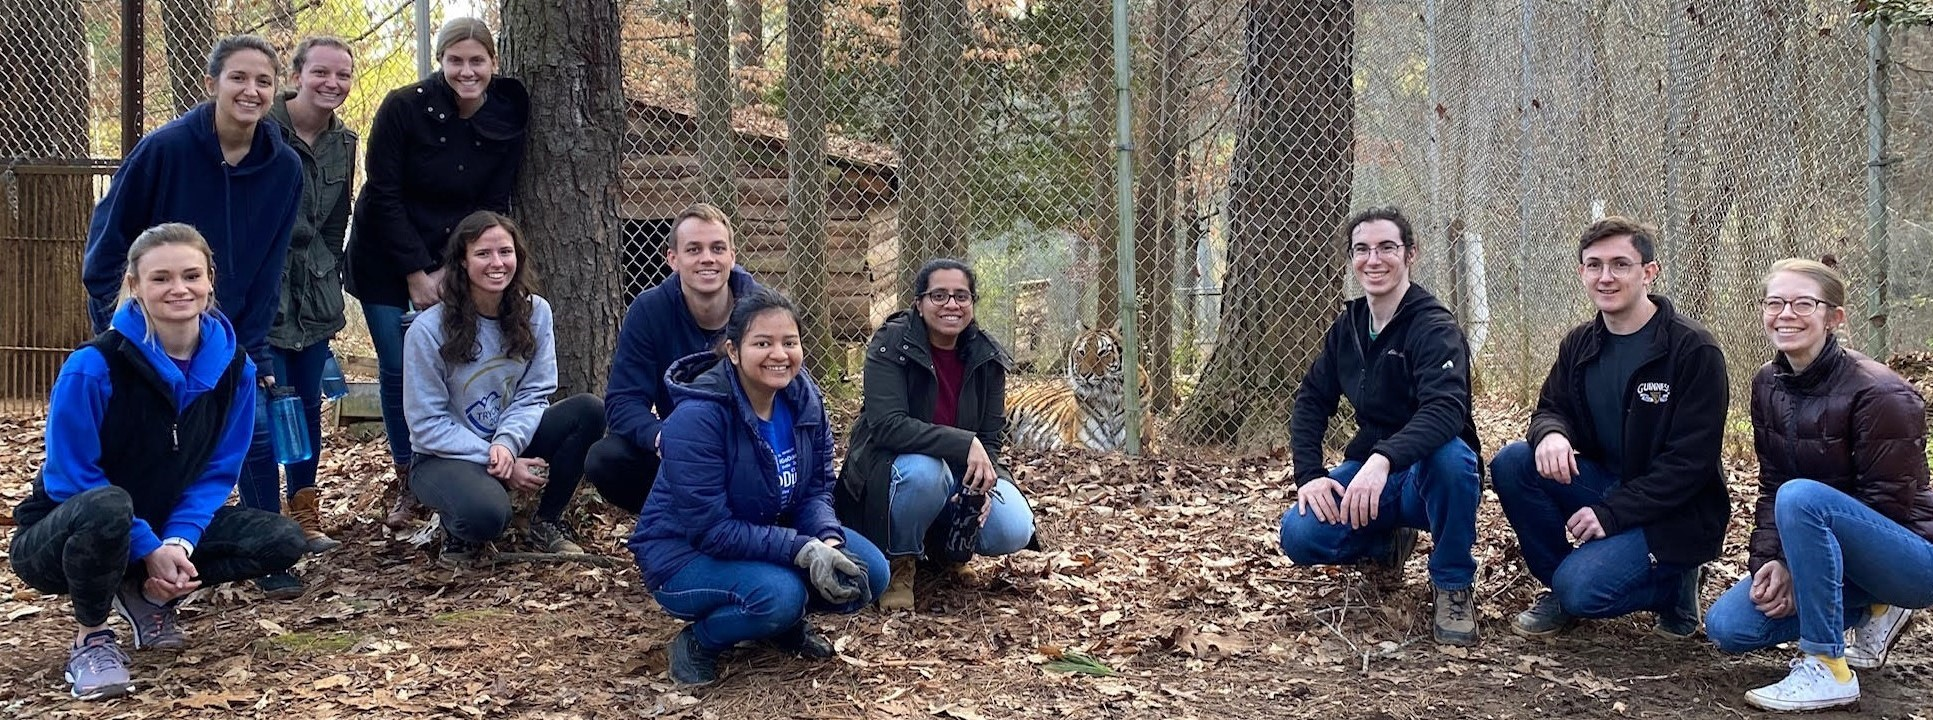 MEMS Graduate Student Committee at Carolina Tiger Rescue